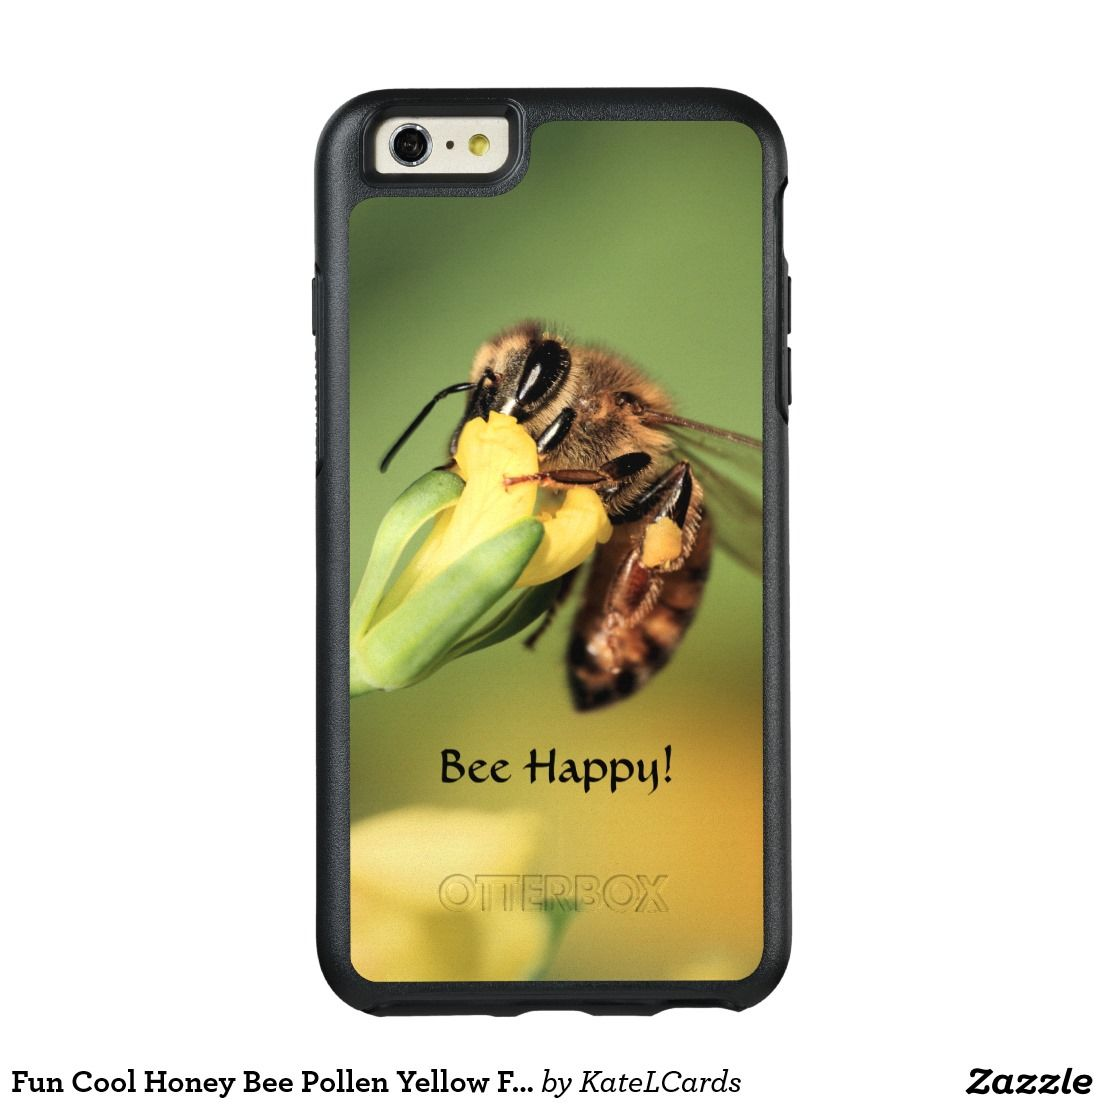 Fun Cool Honey Bee Pollen Yellow Floral Custom OtterBox iPhone 6 6s Plus  Case 384e2366a